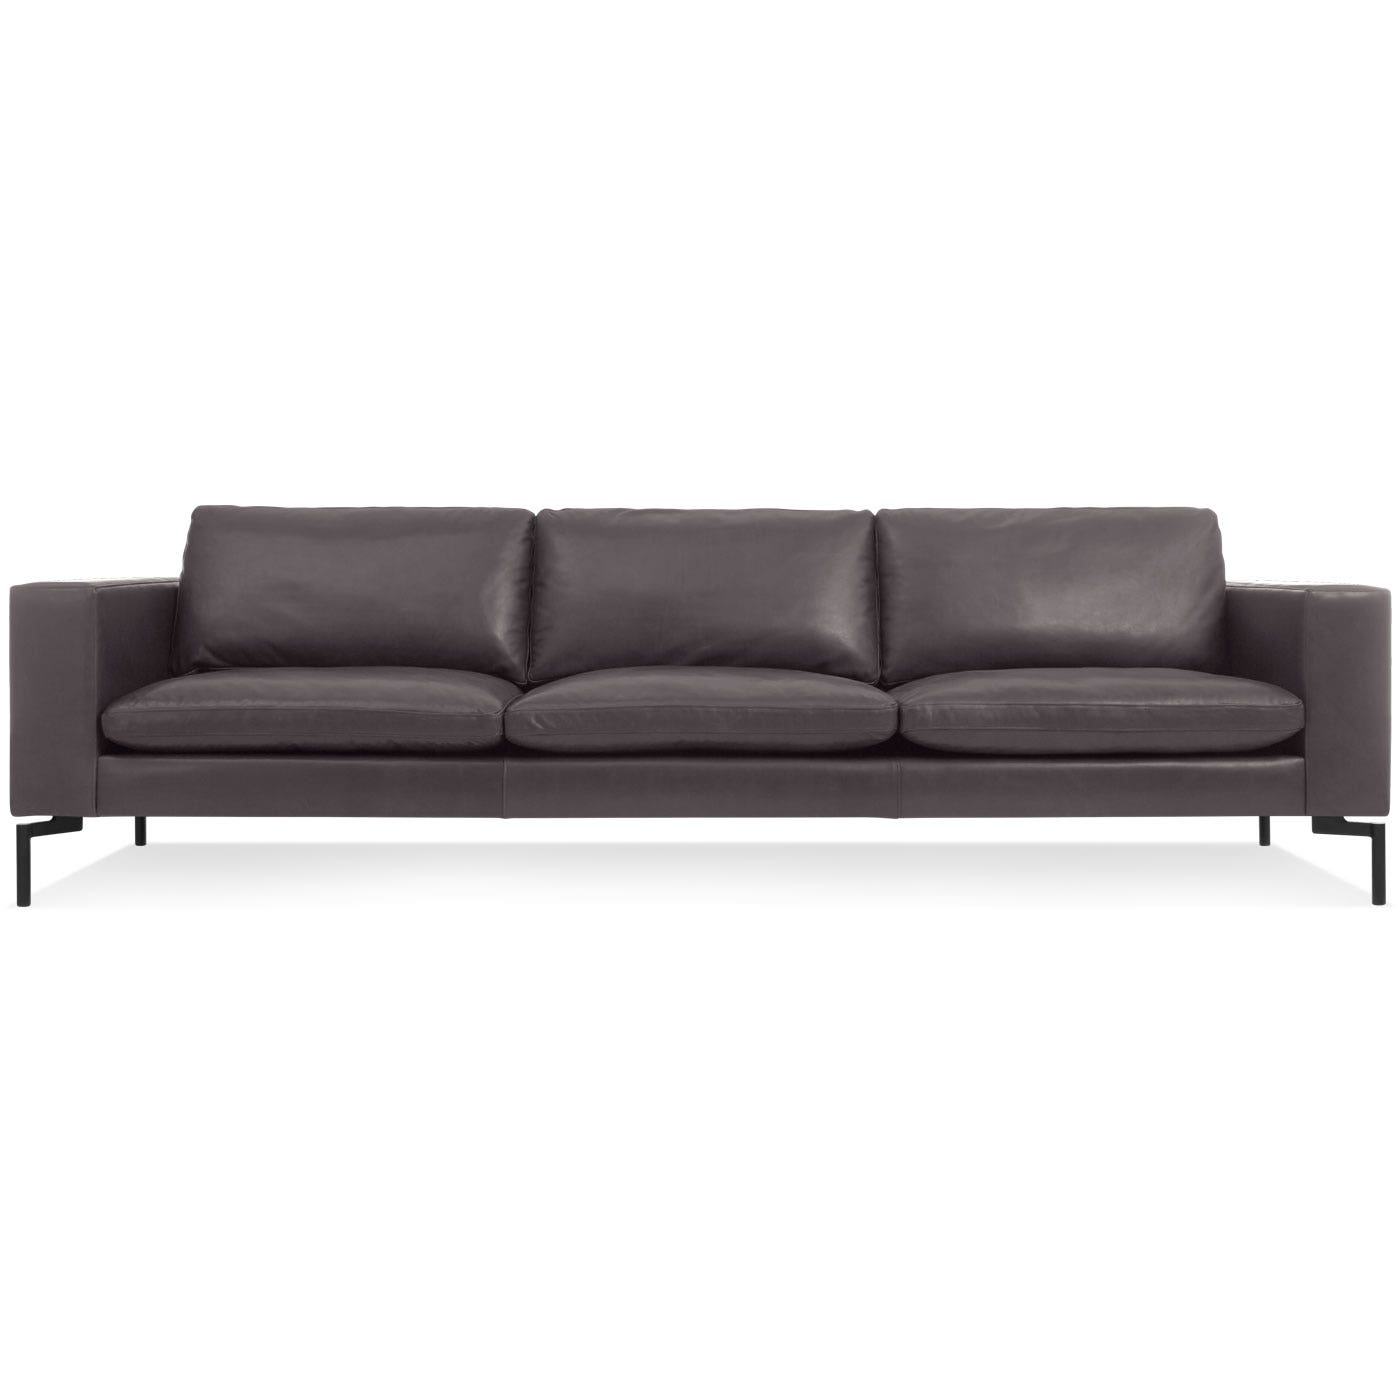 New Standard 104 Inch Sofa - Modern Sofas and Sectionals - BluDot.com